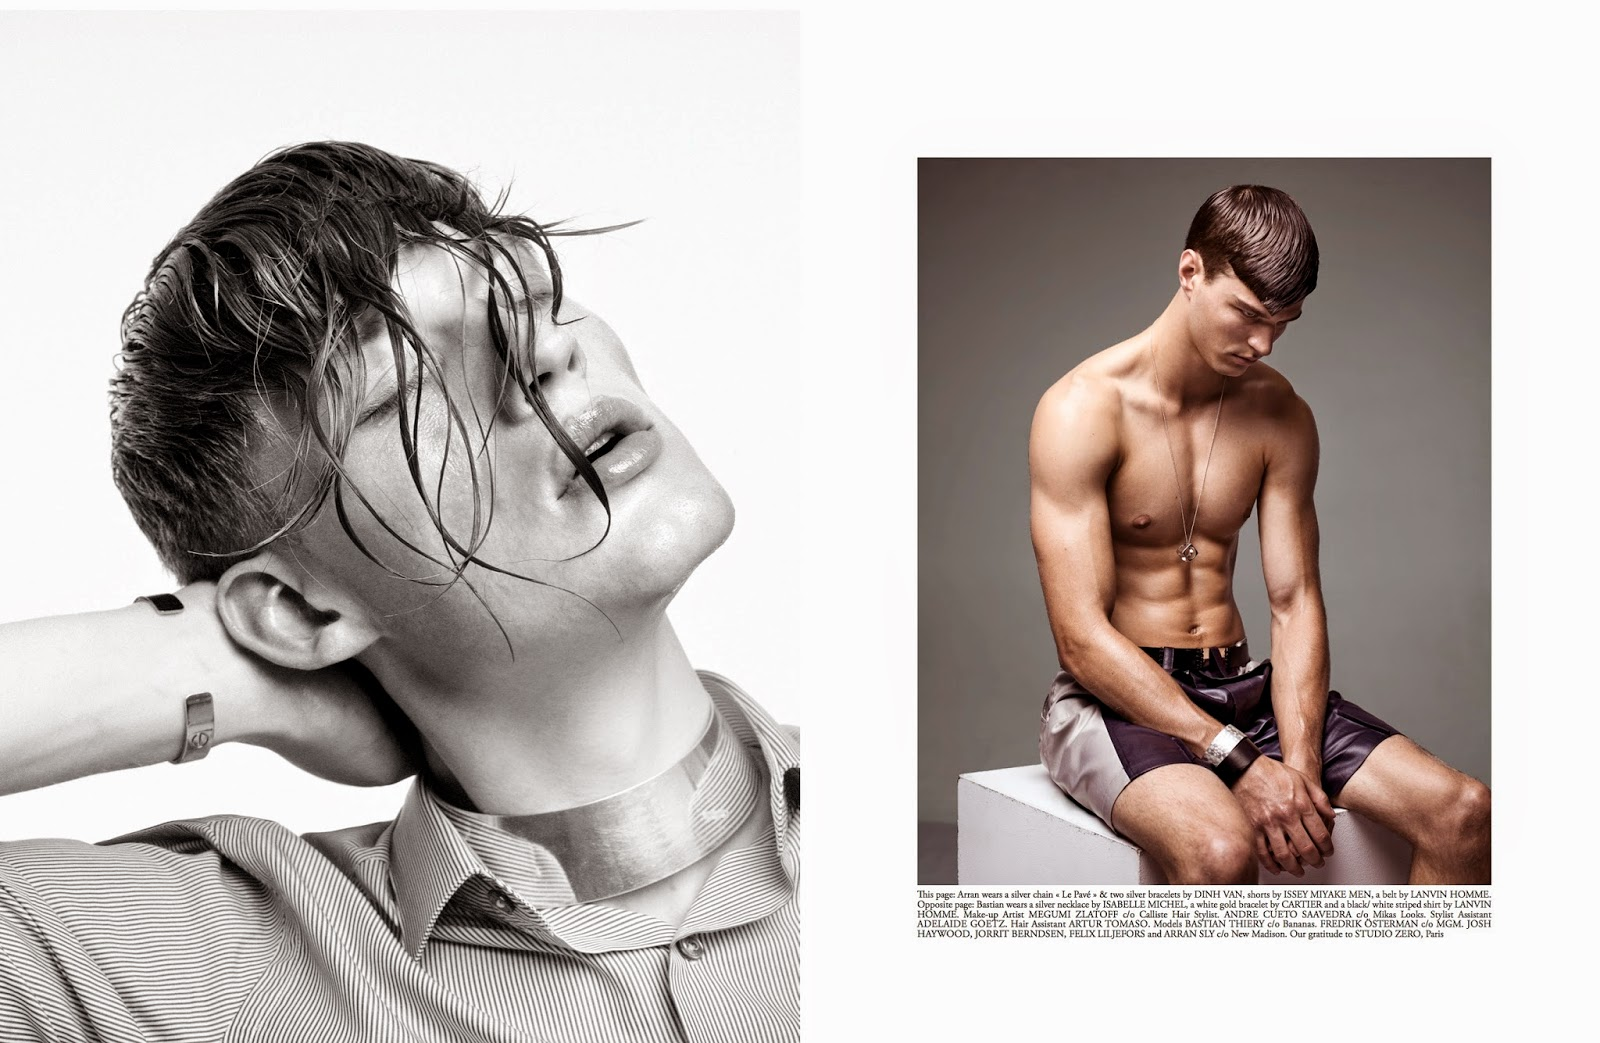 Bastian Thiery, Arran Sly + More in 'Wet Waves' for Narcisse